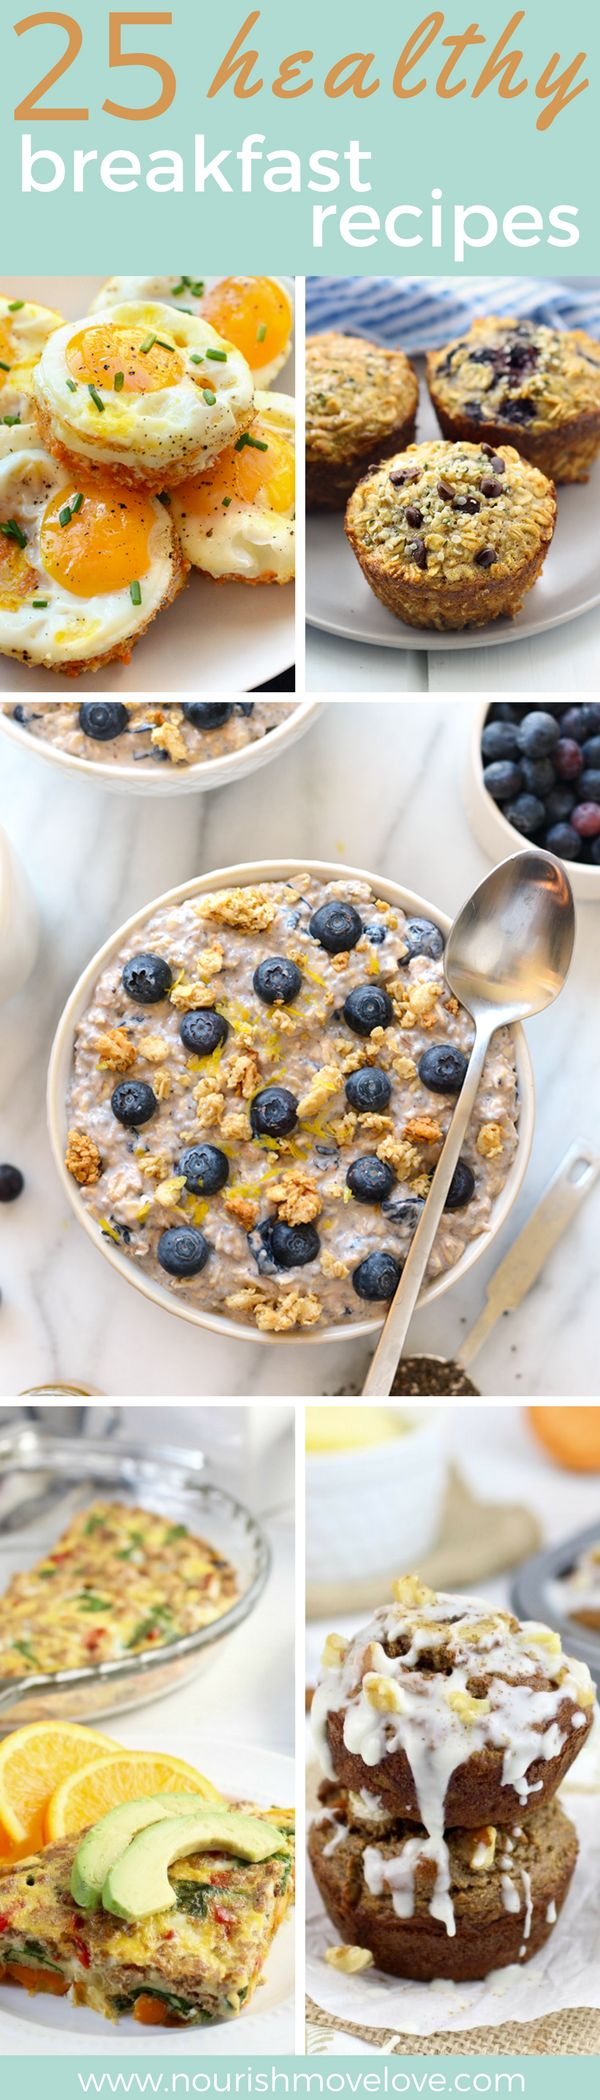 25 healthy breakfasts that you can meal prep for the week. Savory and sweet options that will satisfiy and keep you full all morning long. All natural, clean ingredients, simple recipes. Egg + sweet potato hash brown cups, protein muffins, overnight oats, vegetable egg bake, banana muffins.